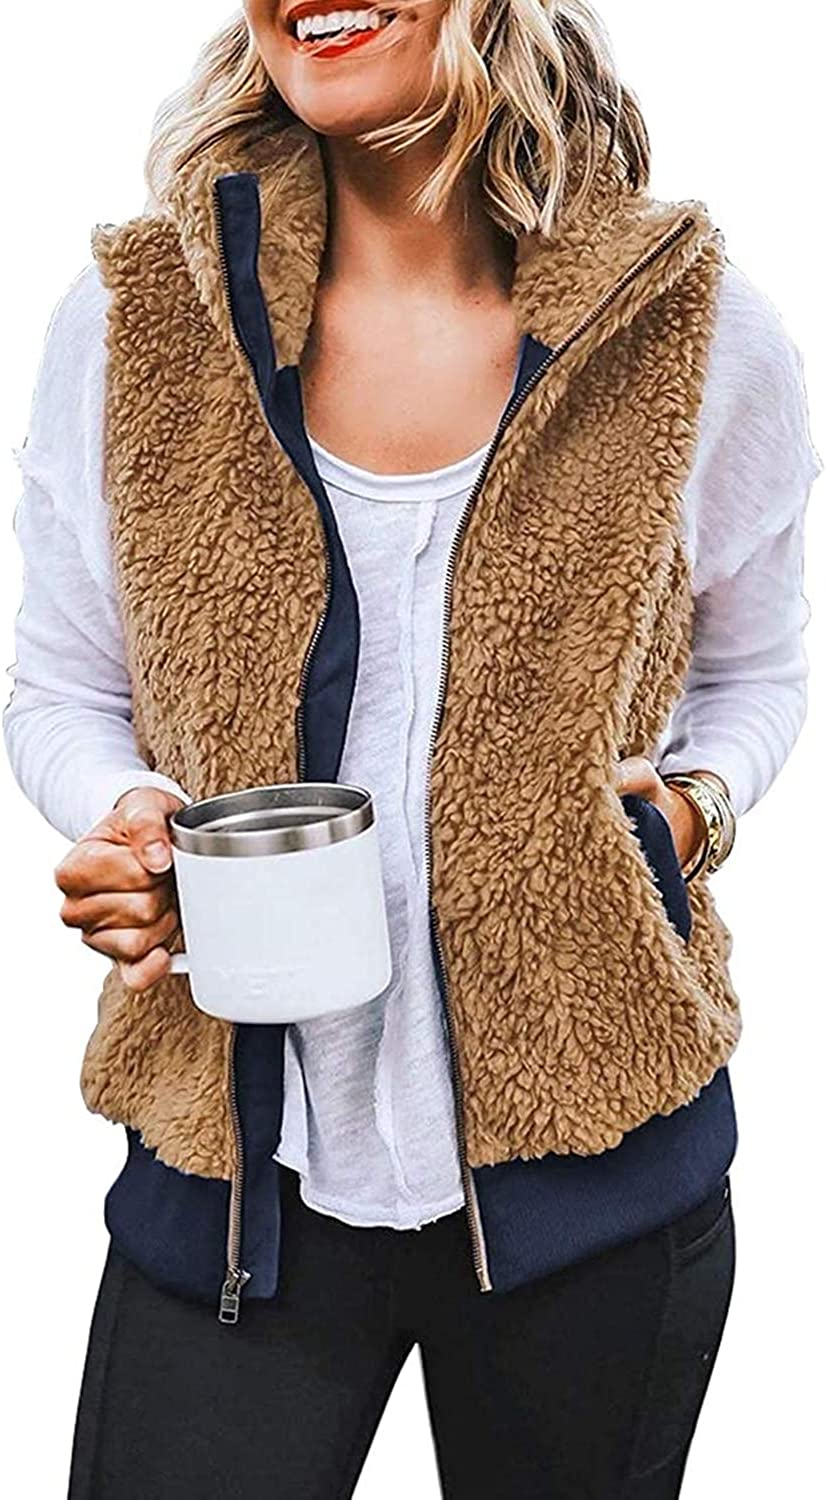 ReachMe Womens Genuine Free Shipping Sleeveless Fleece Vest Pockets Sherpa Max 75% OFF with Fuzzy